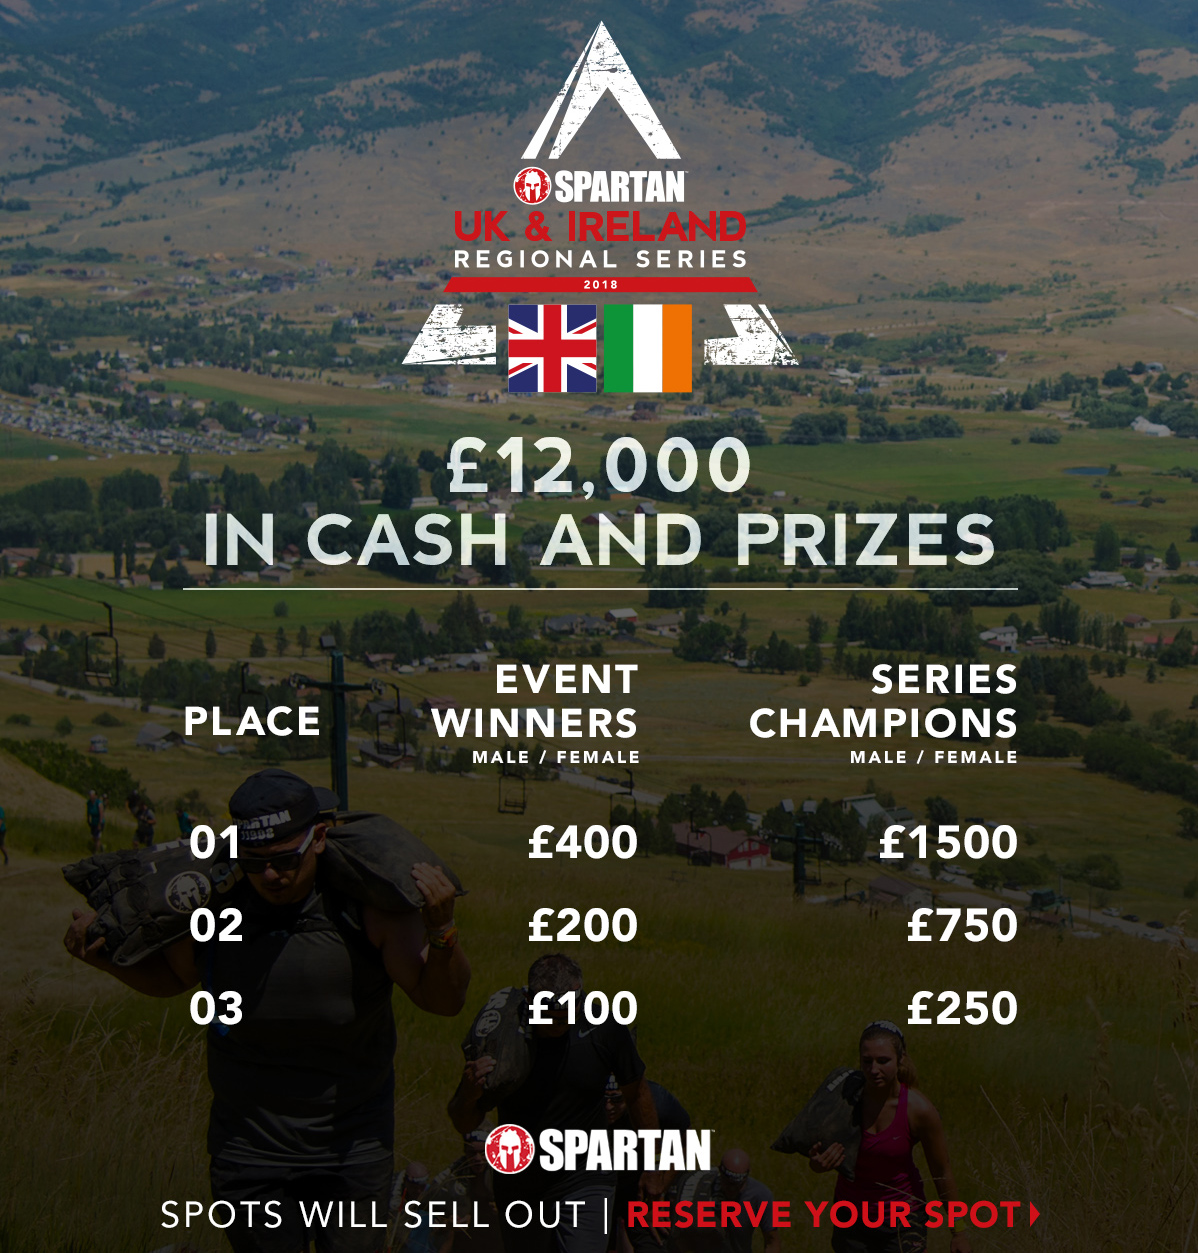 Spartan Philippines Obstacle Course Races | 2018 UK &